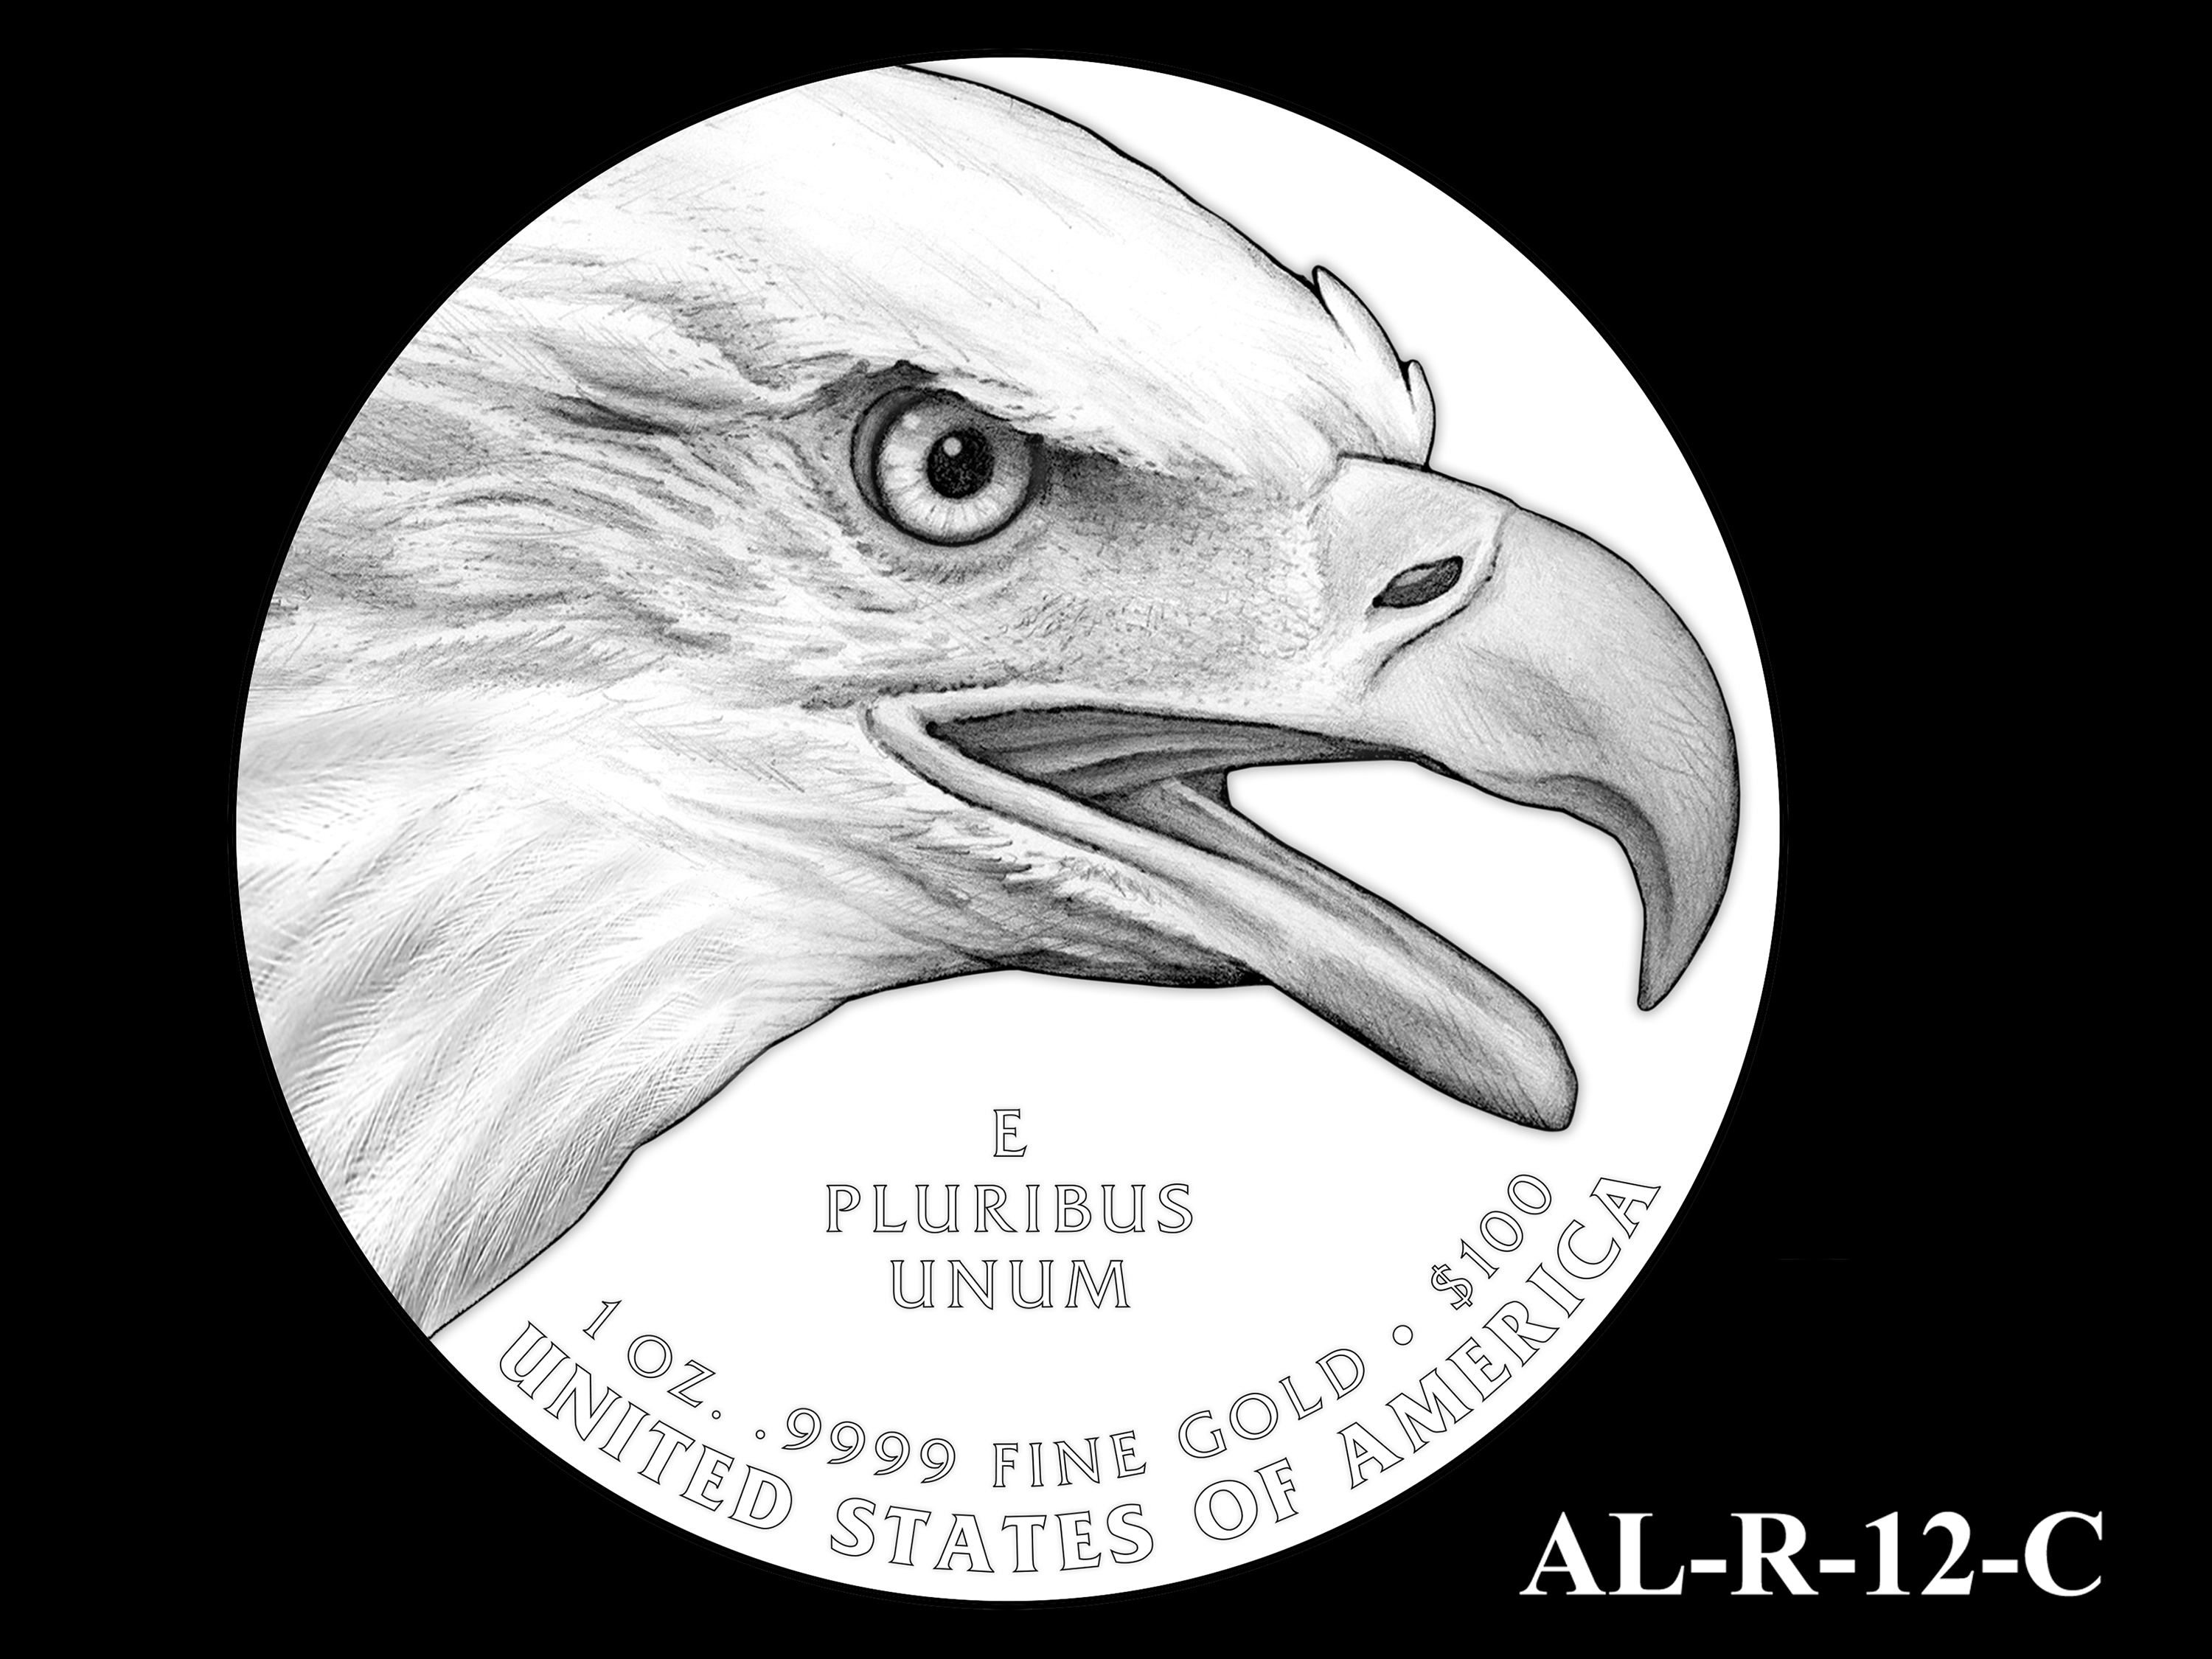 AL-R-12-C -- 2021 American Liberty Gold Coin and Silver Medal Program - Reverse